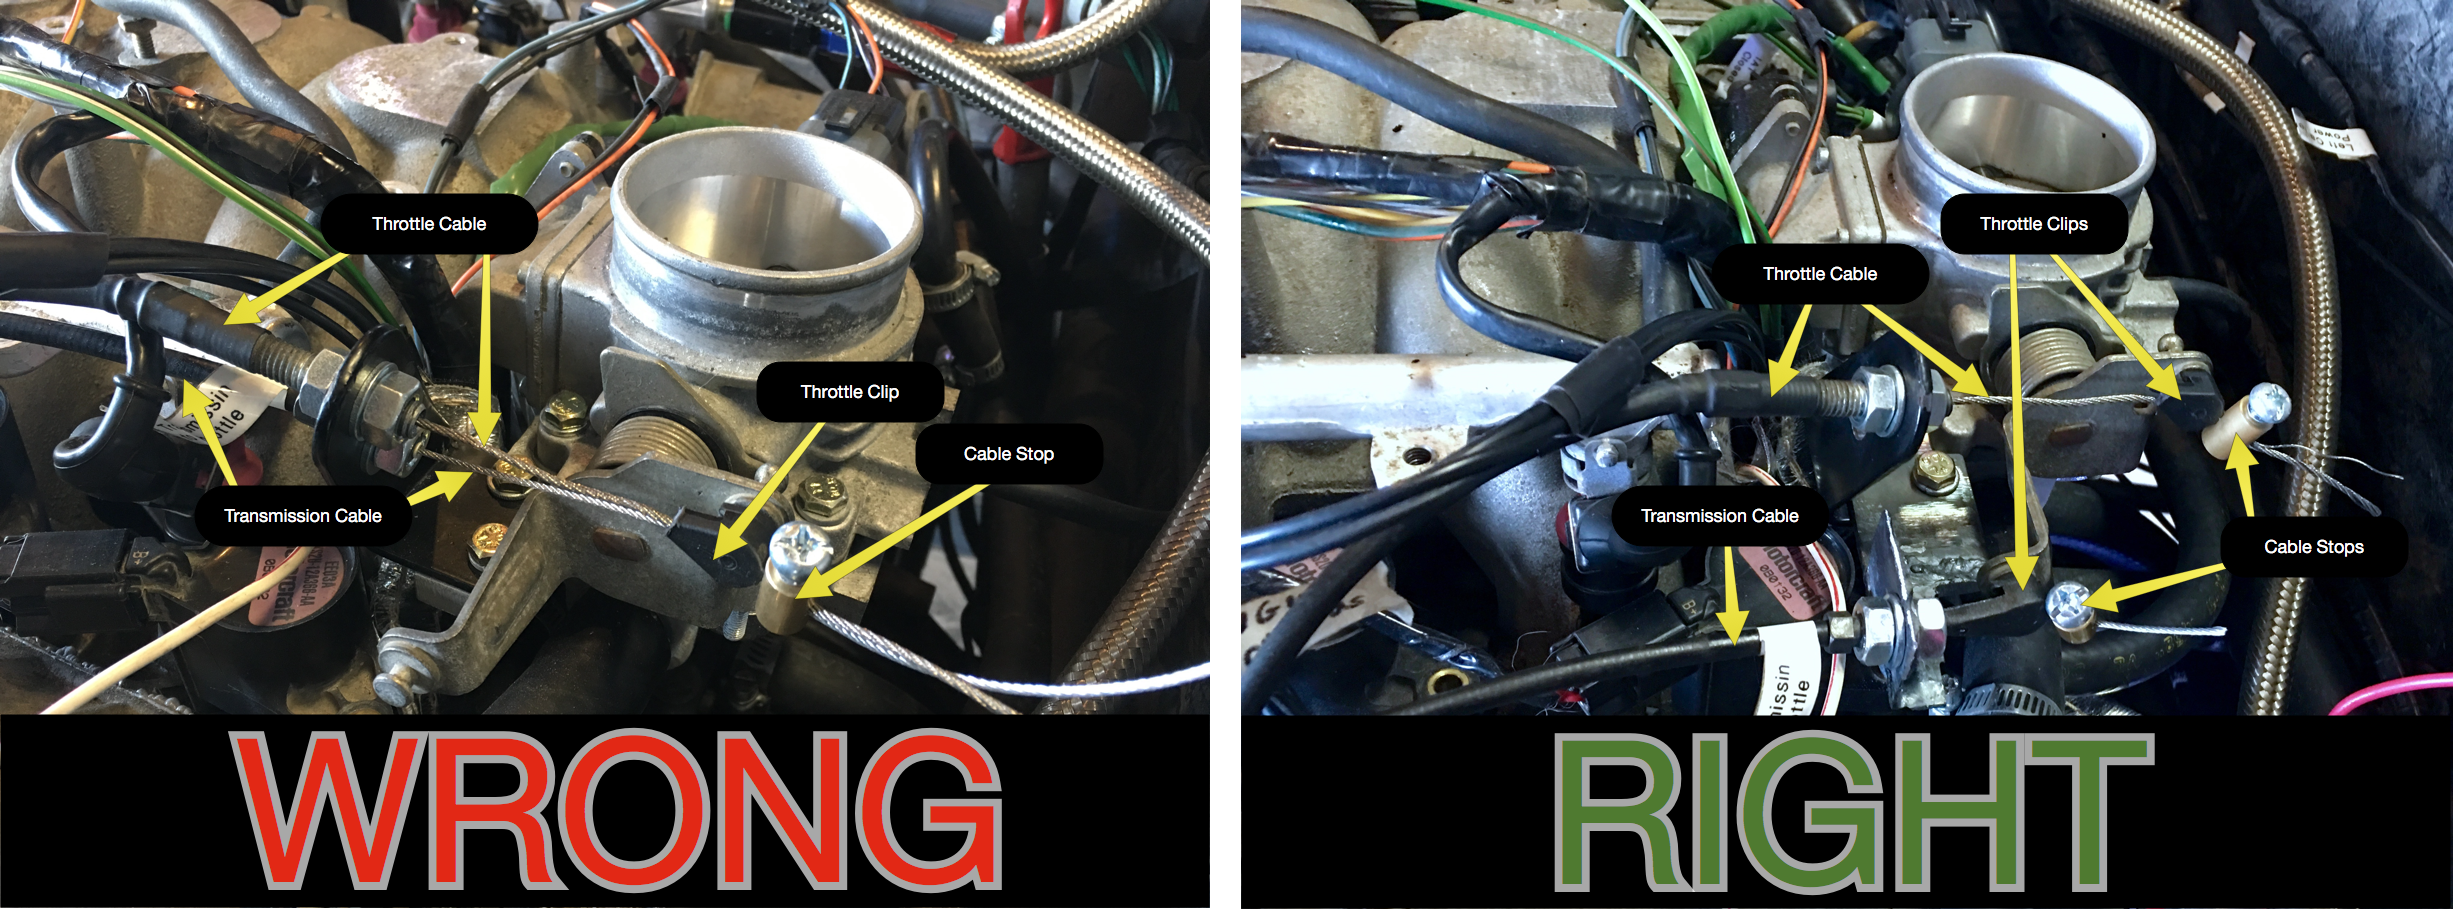 Incorrect and correct mounting of the throttle and transmission cables. The important bit is that the transmission cable is pulled  out  while the throttle cable is being pulled  in .